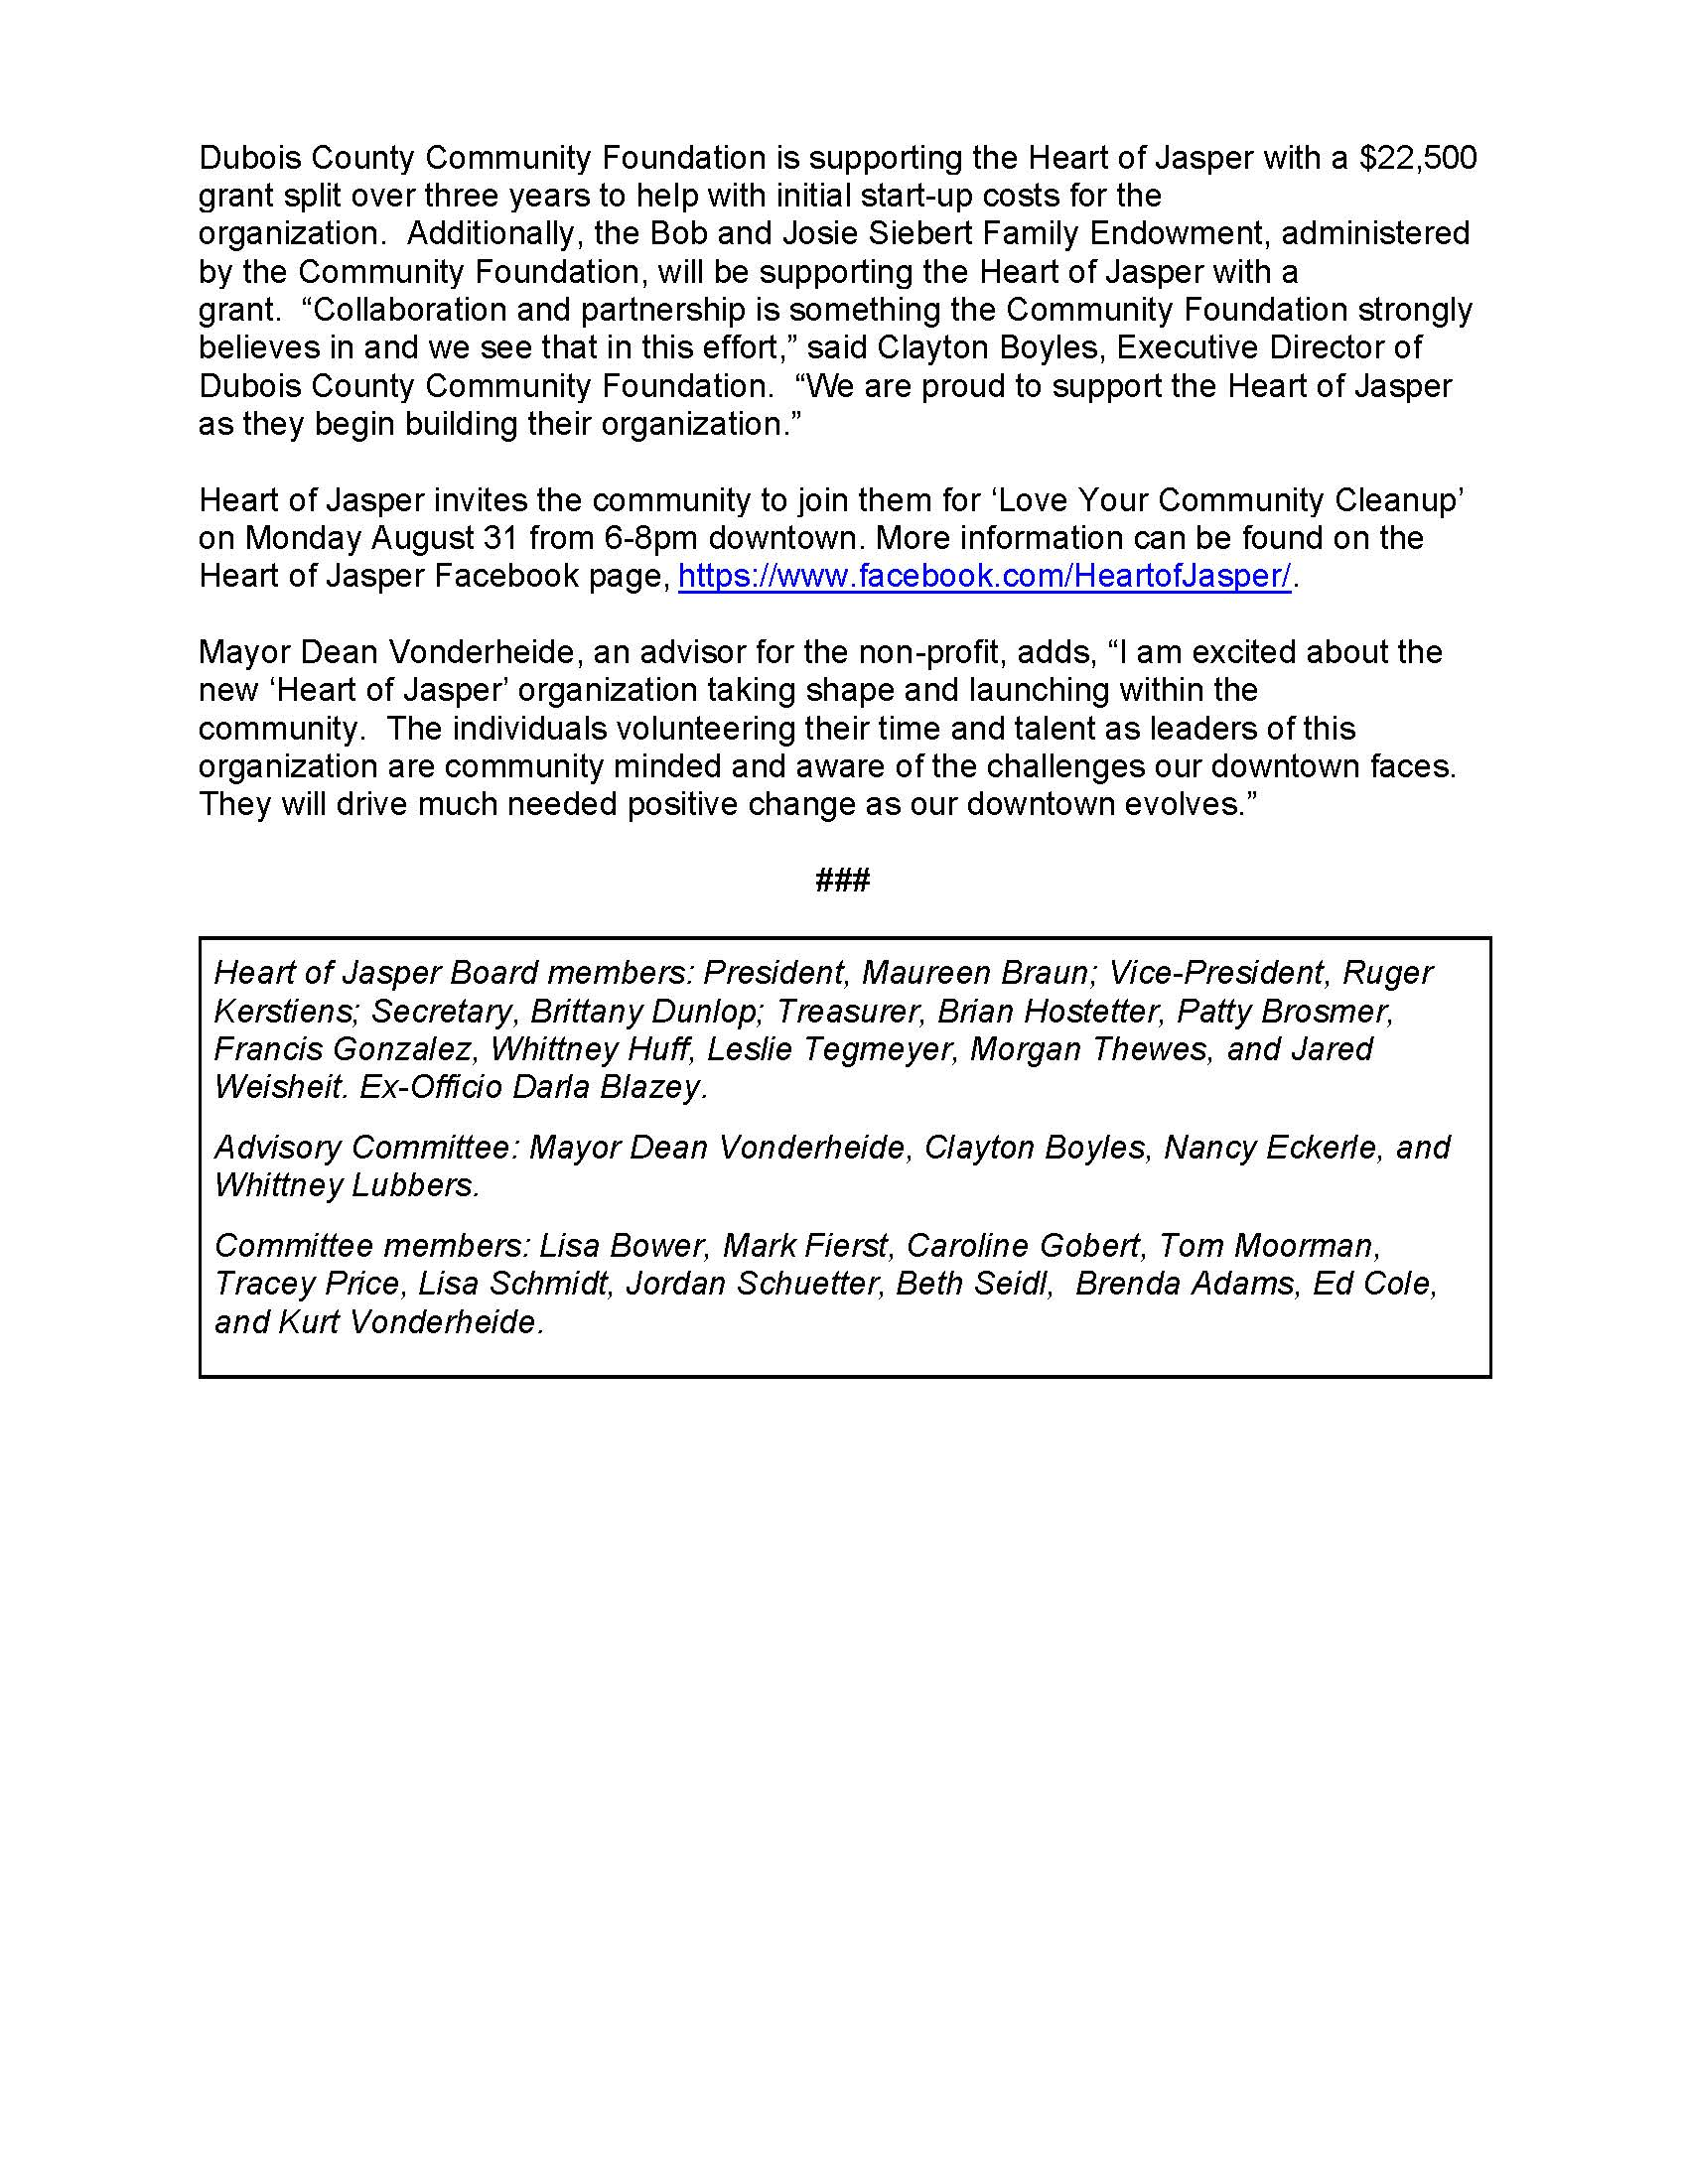 Heart of Jasper News Release Final (2)_Page_2